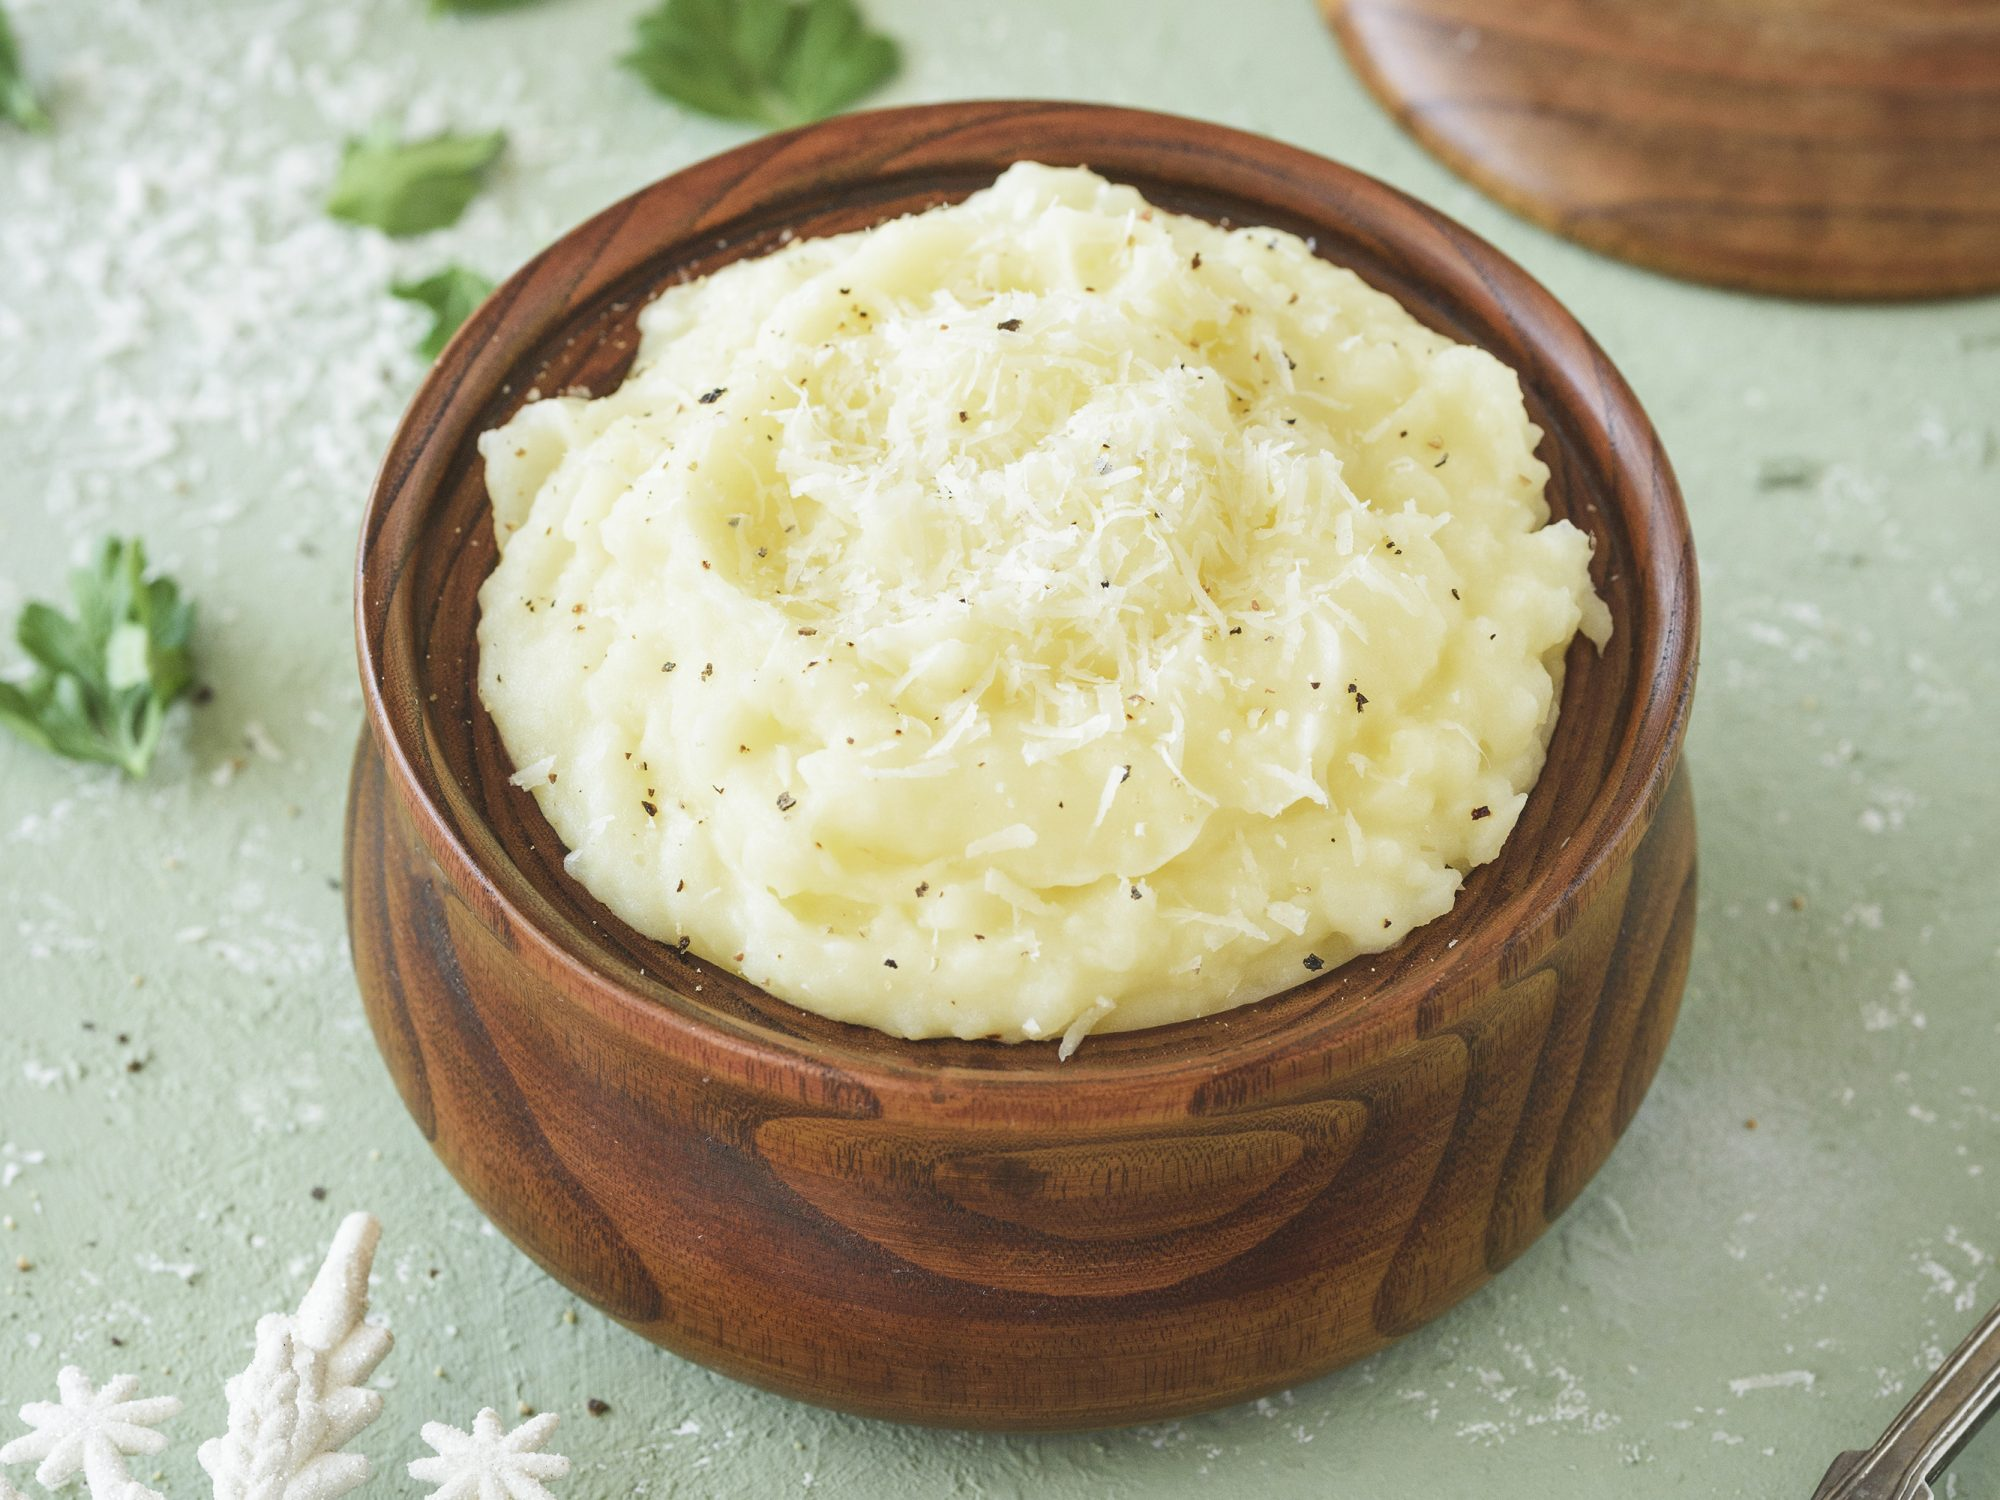 Mashed potatoes with cheese: blender hack for making mashed potatoes